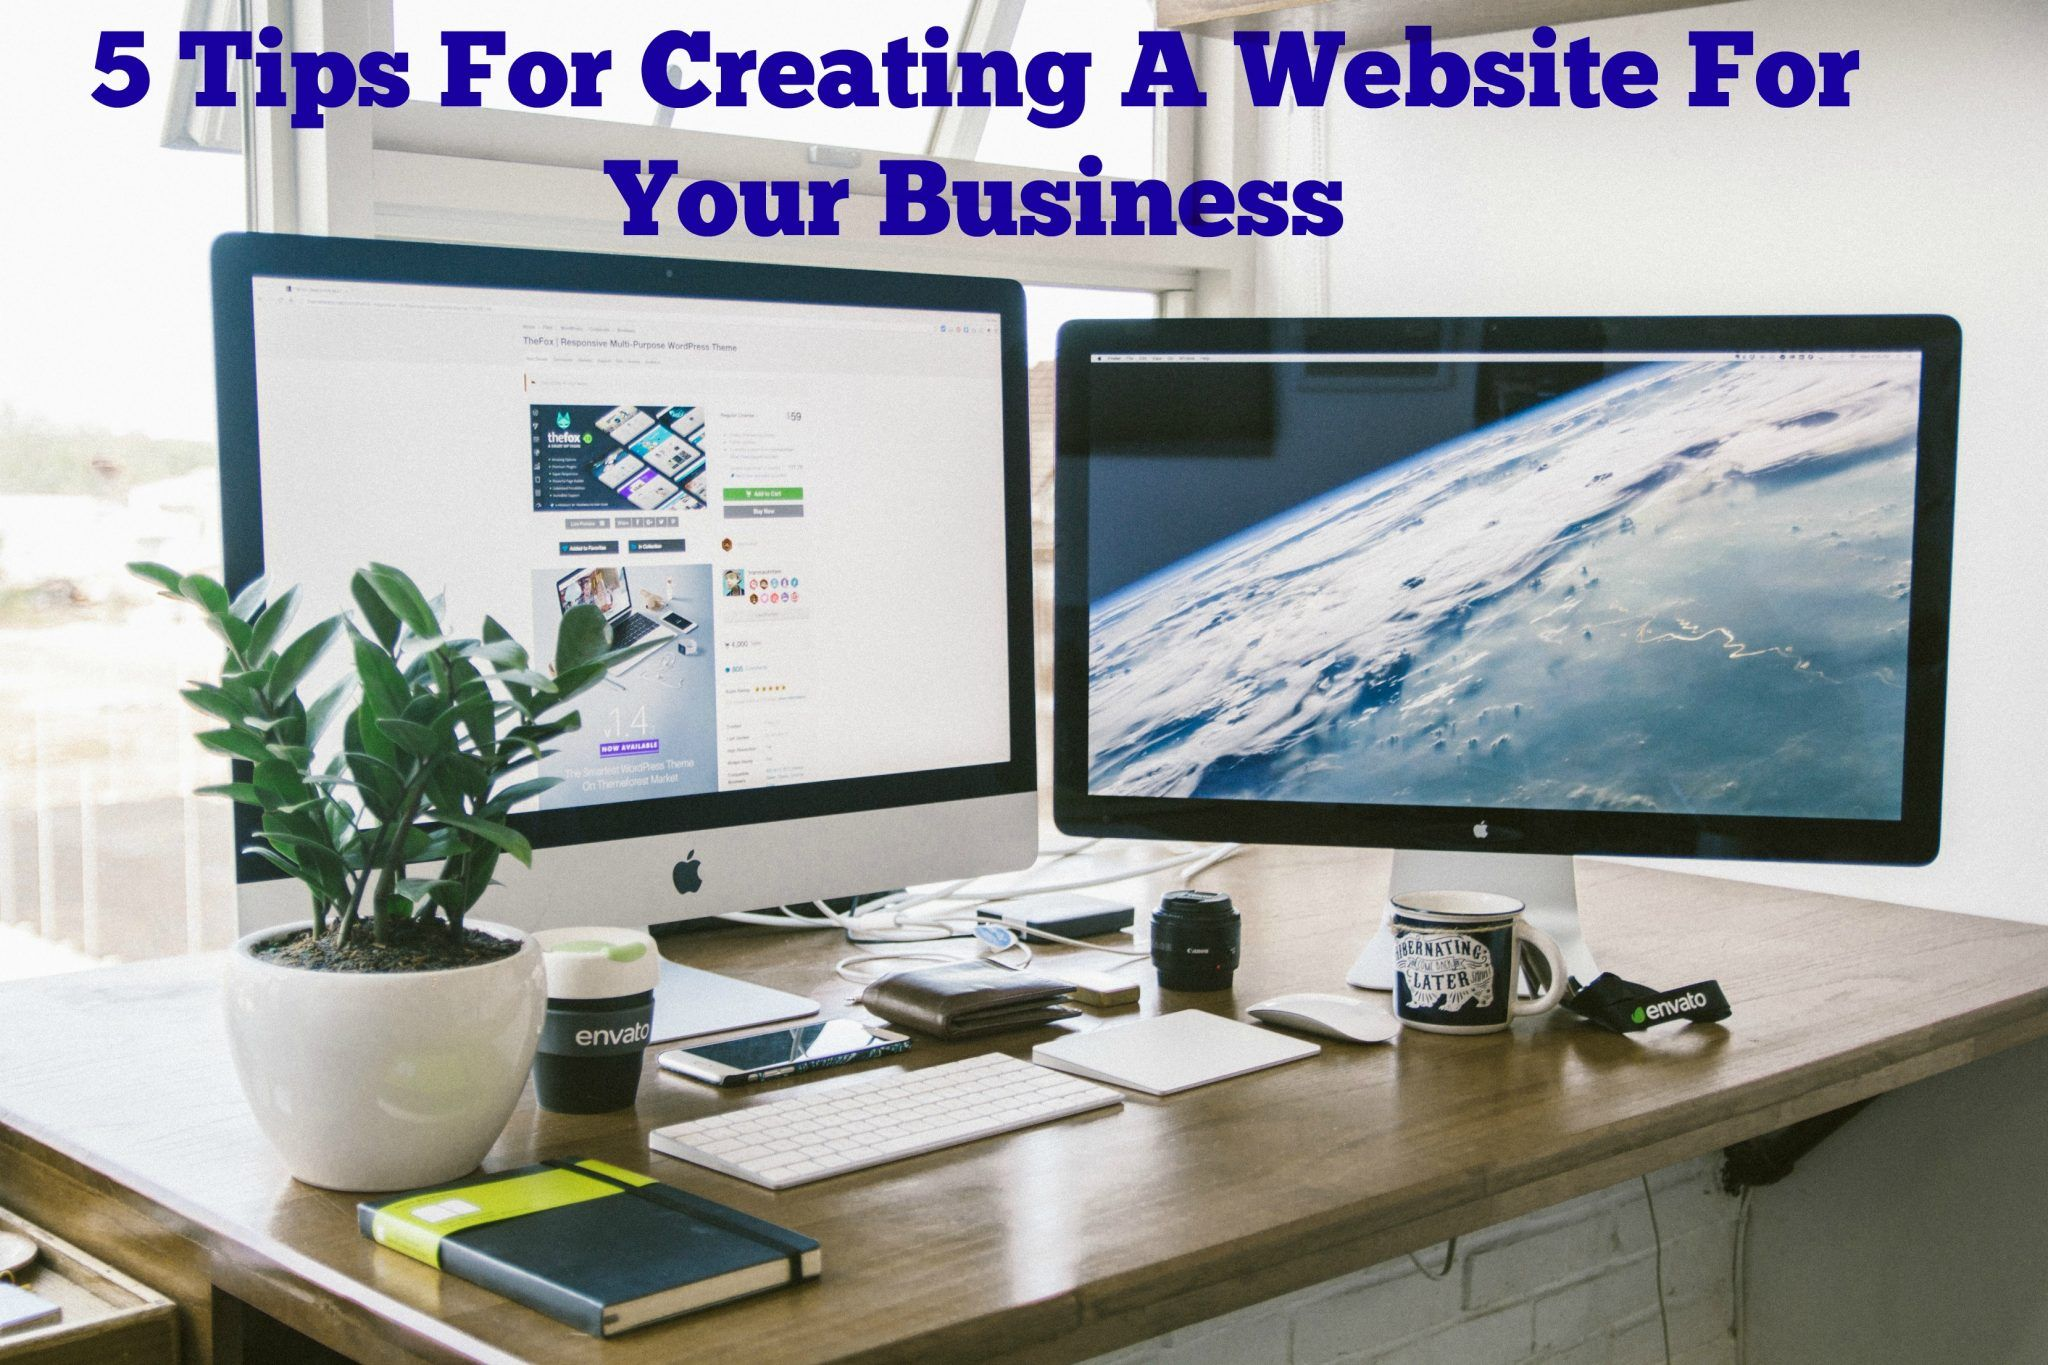 Starting a new business is an exciting undertaking; there is nothing more rewarding than being your own boss. After all the blood, sweat, and tears involved with coming up with your million dollar idea and winning business plan, it's time to create a web presence.